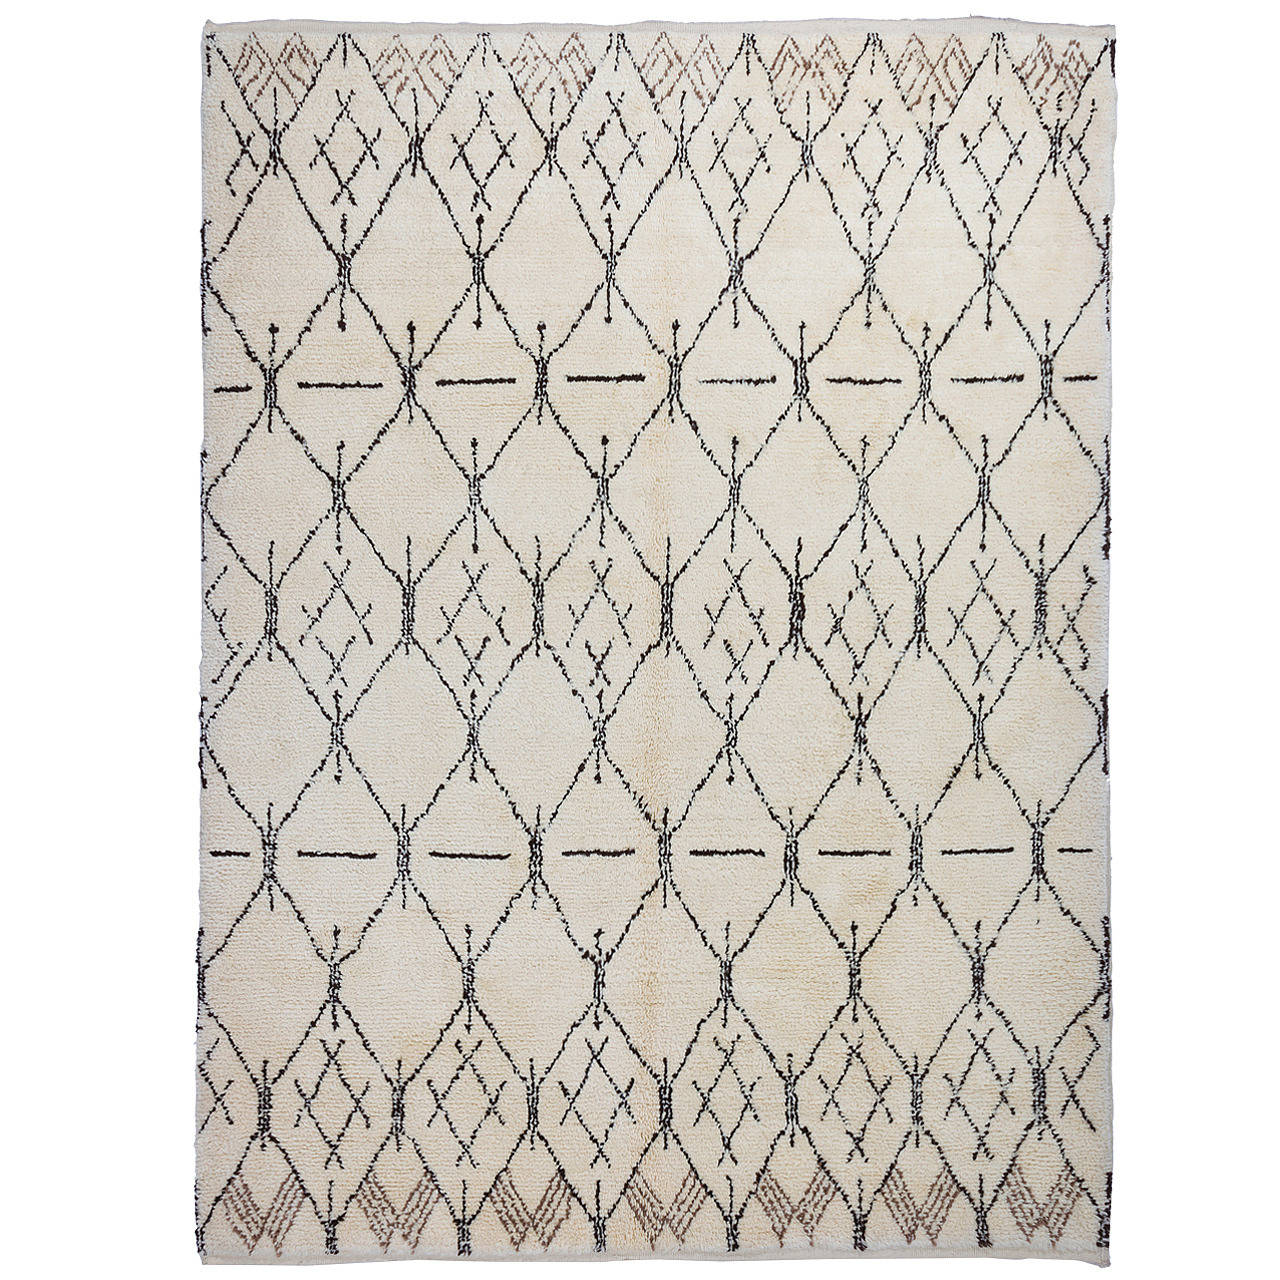 Contemporary Moroccan Design Wool Rug For Sale